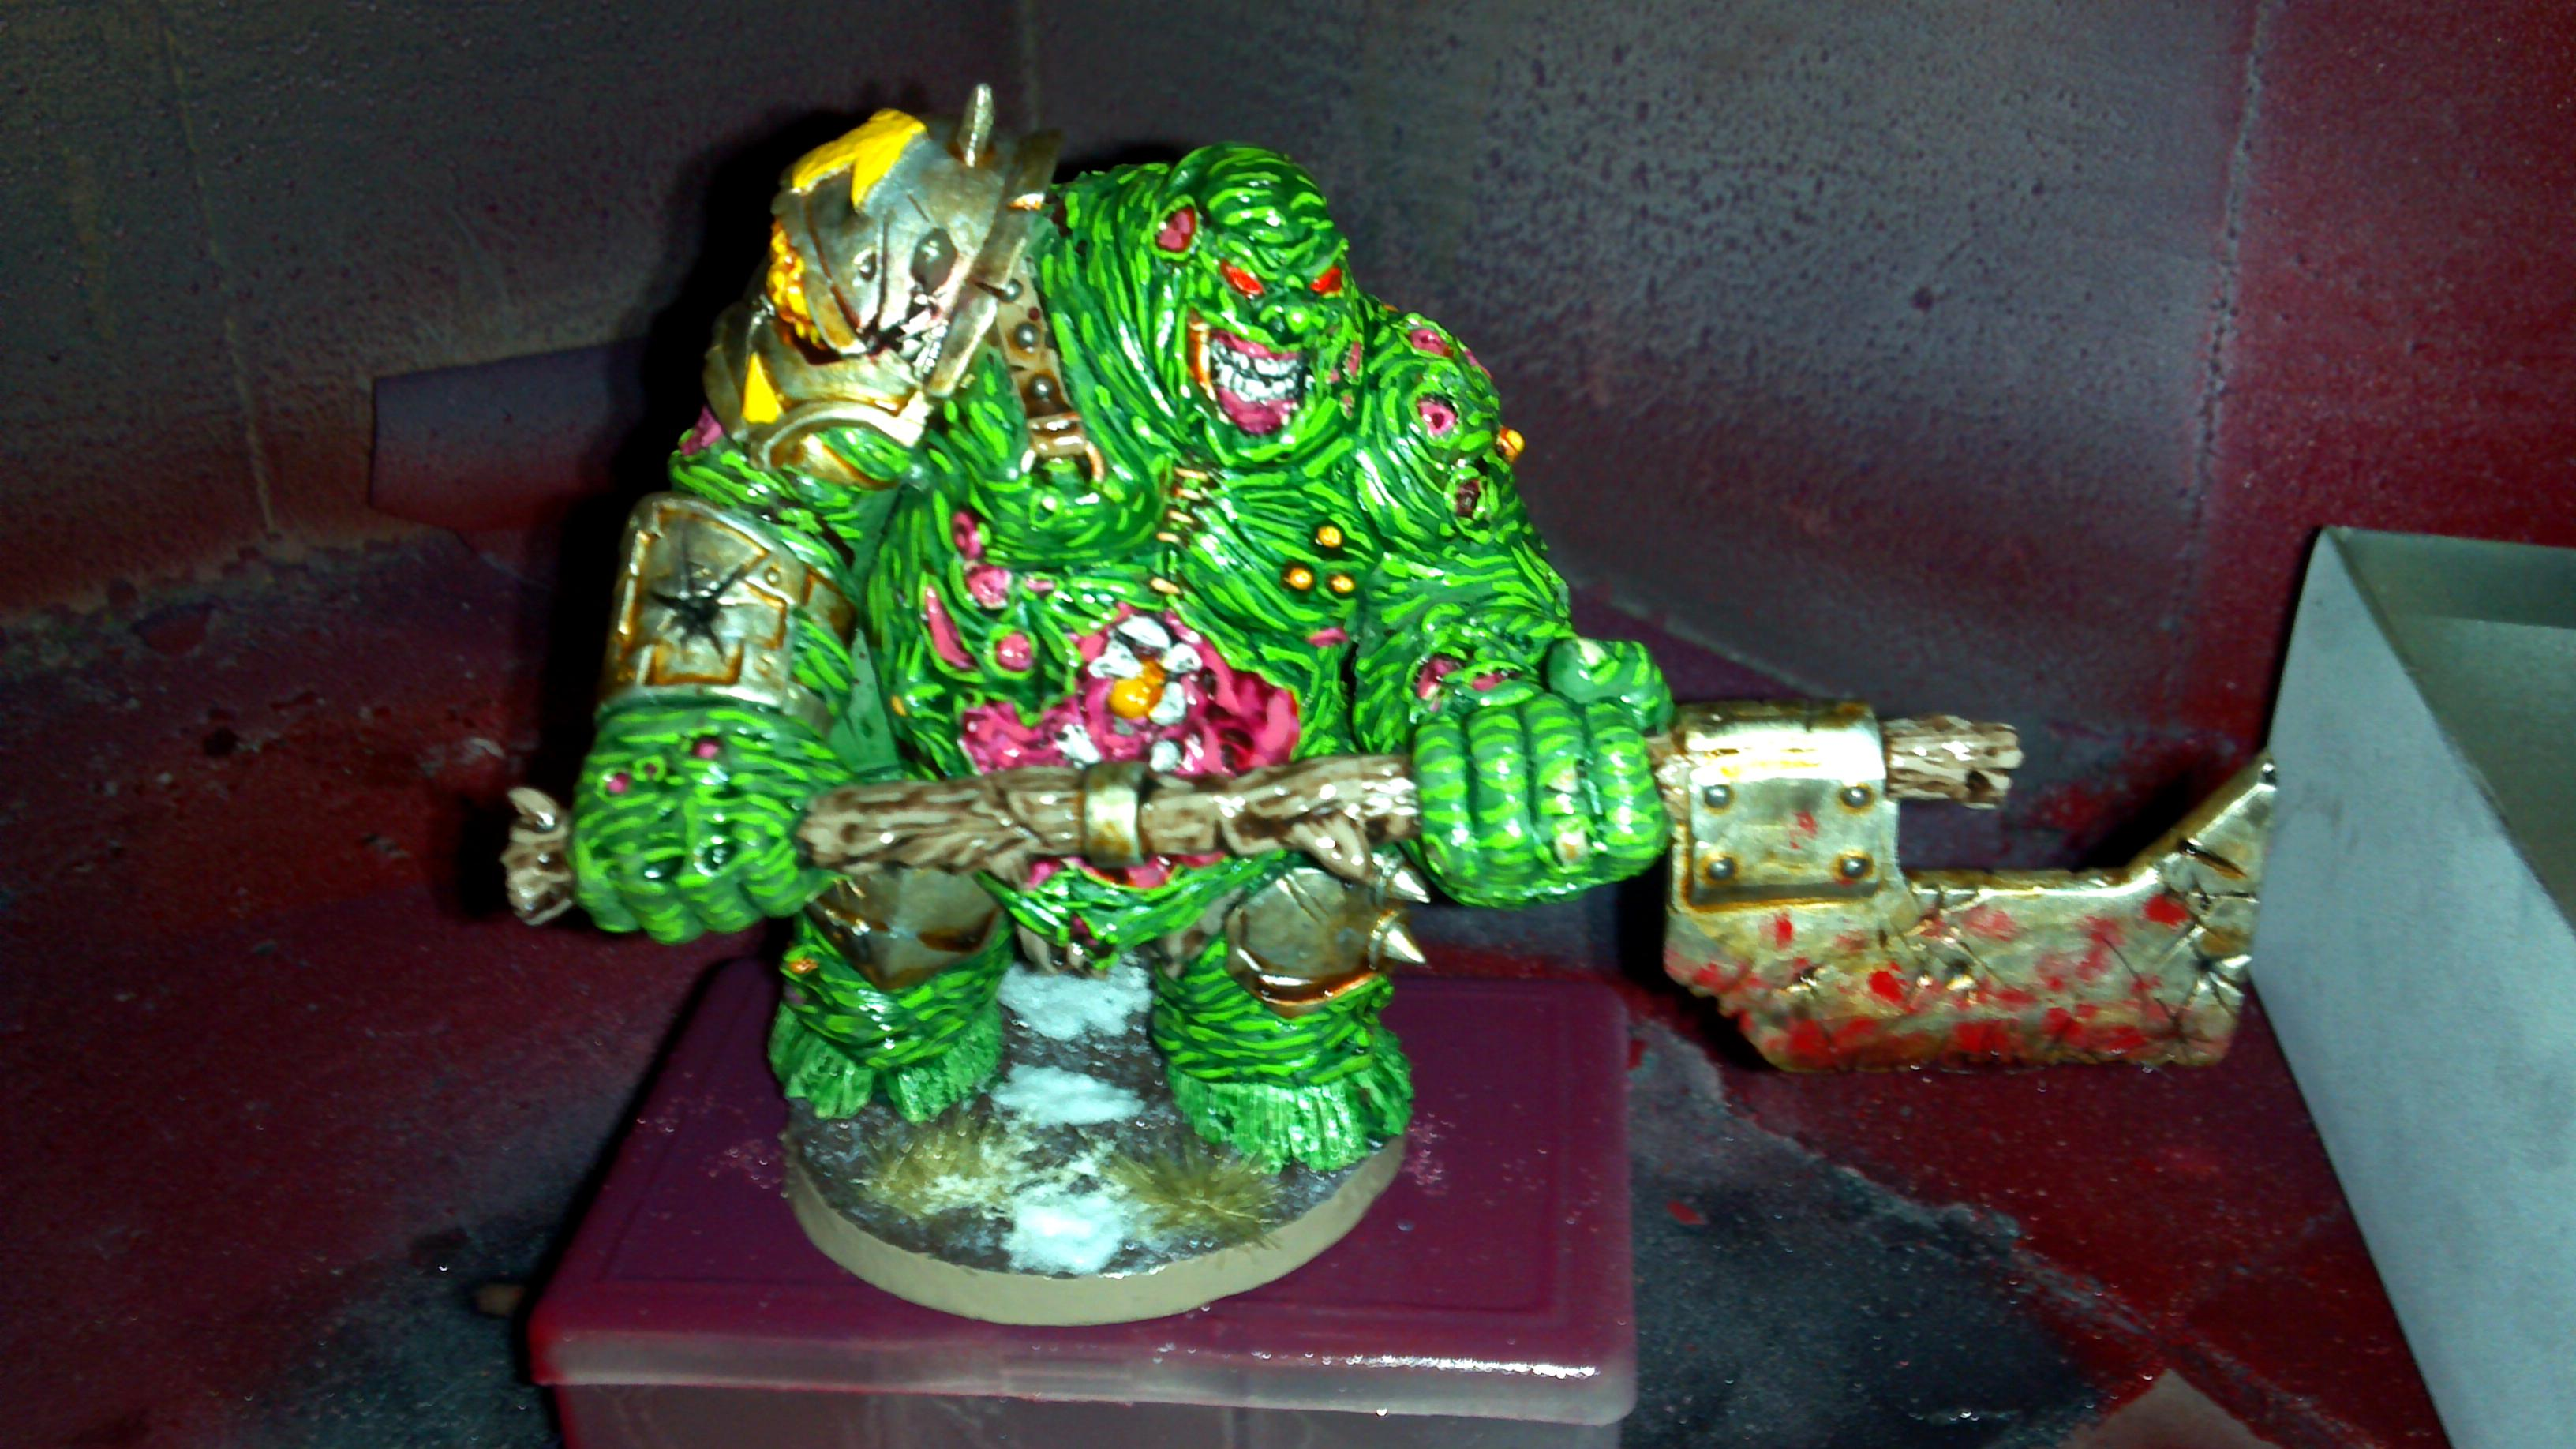 Great Unclean One - The Rotten Butcher